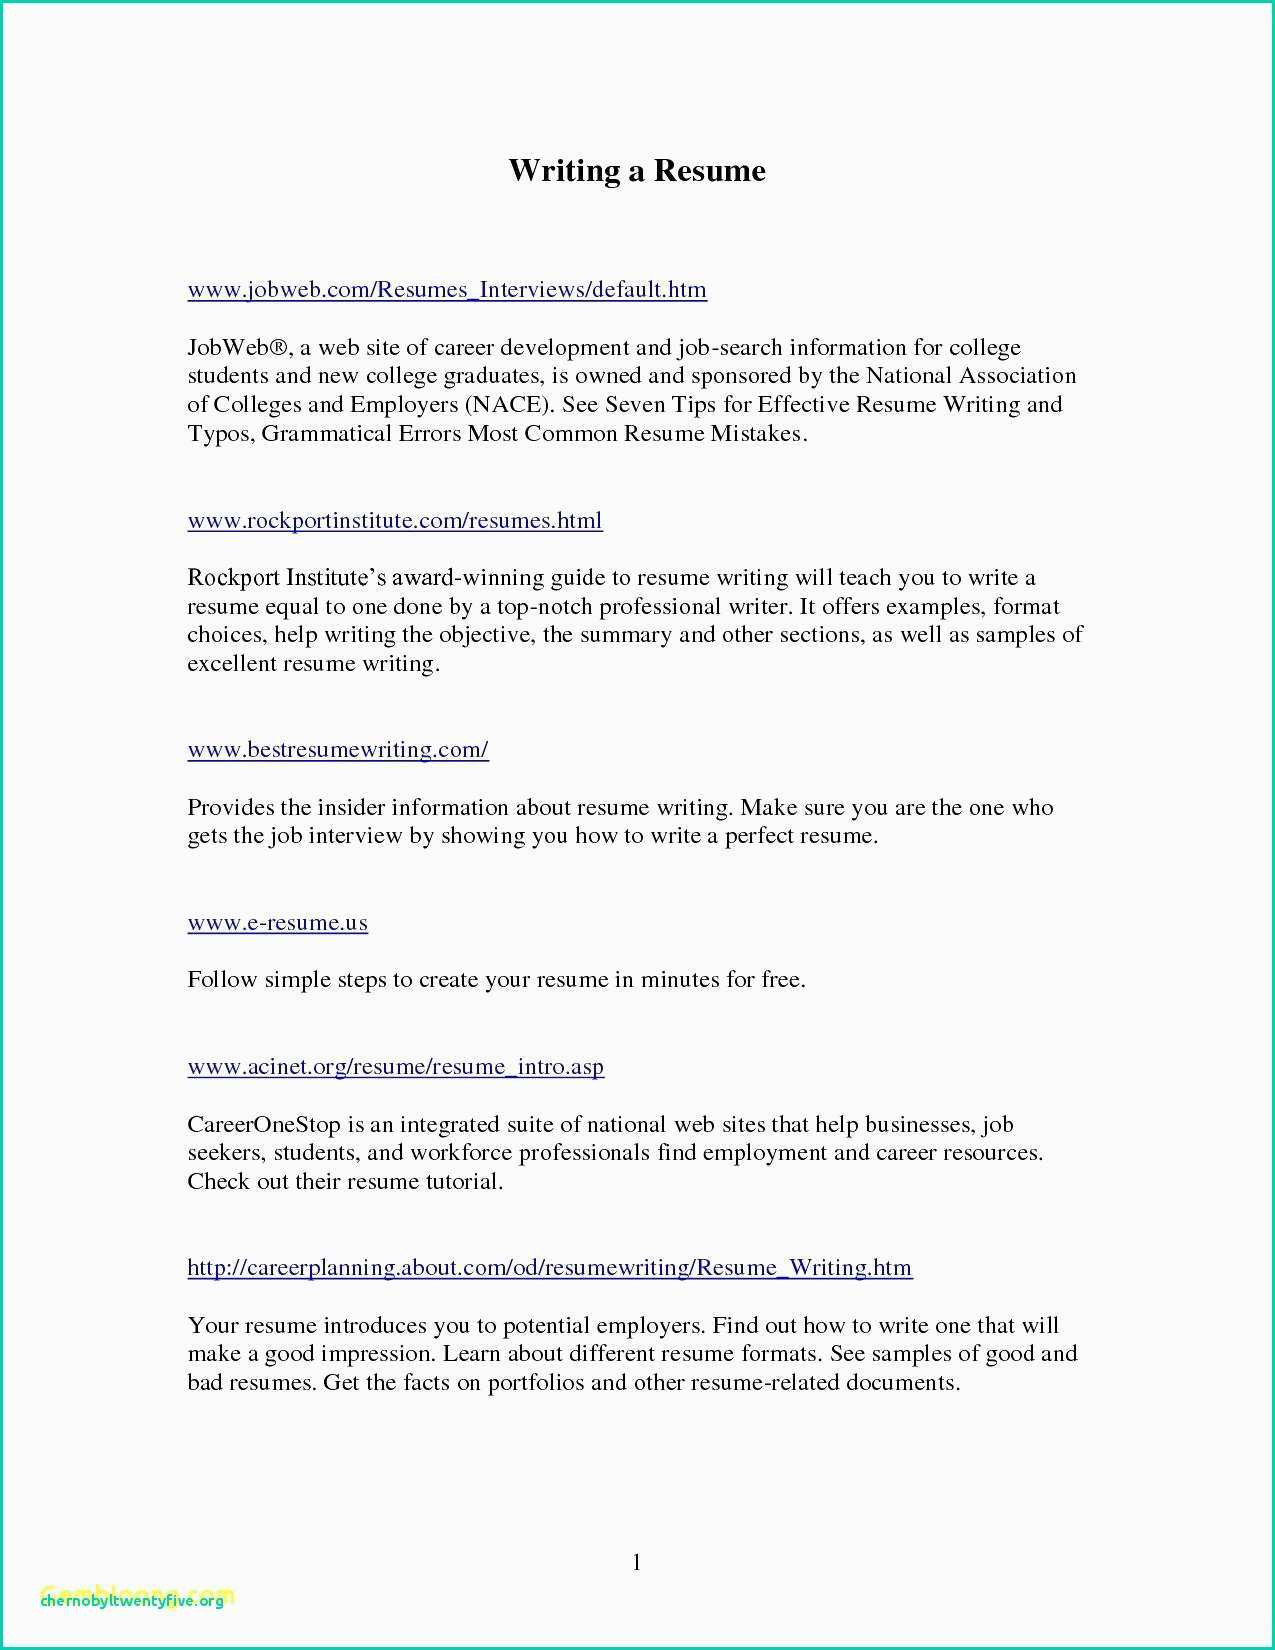 Resume Template for Writers - 77 Designs social Work Resume Template